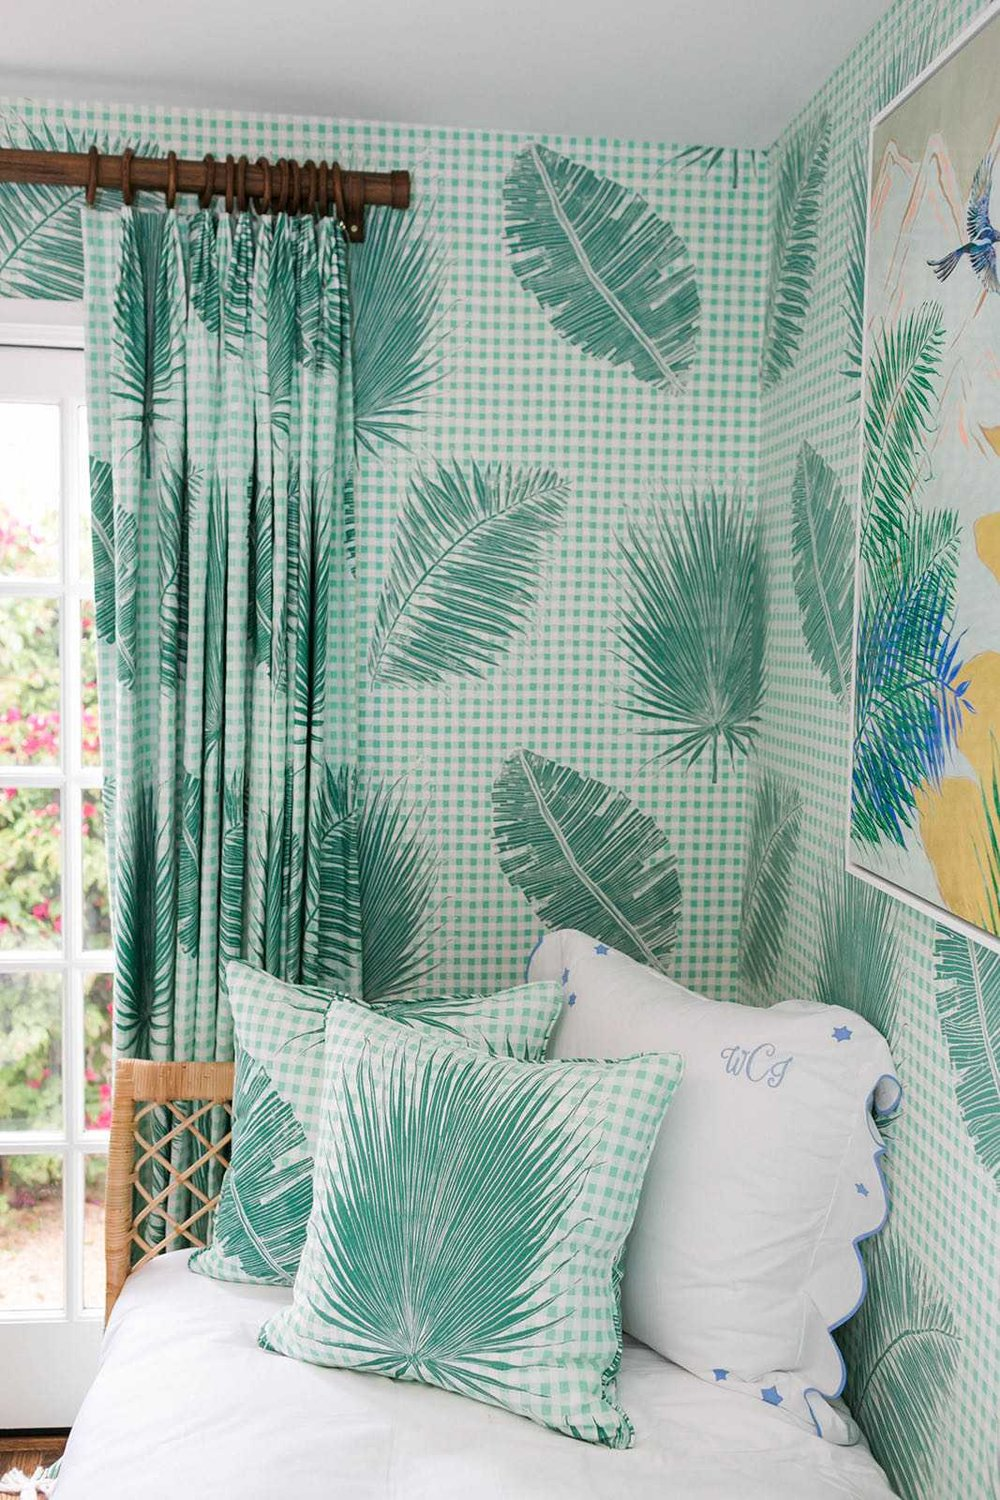 Gingham Jungle pillows, fabric, and wallpaper in Jade